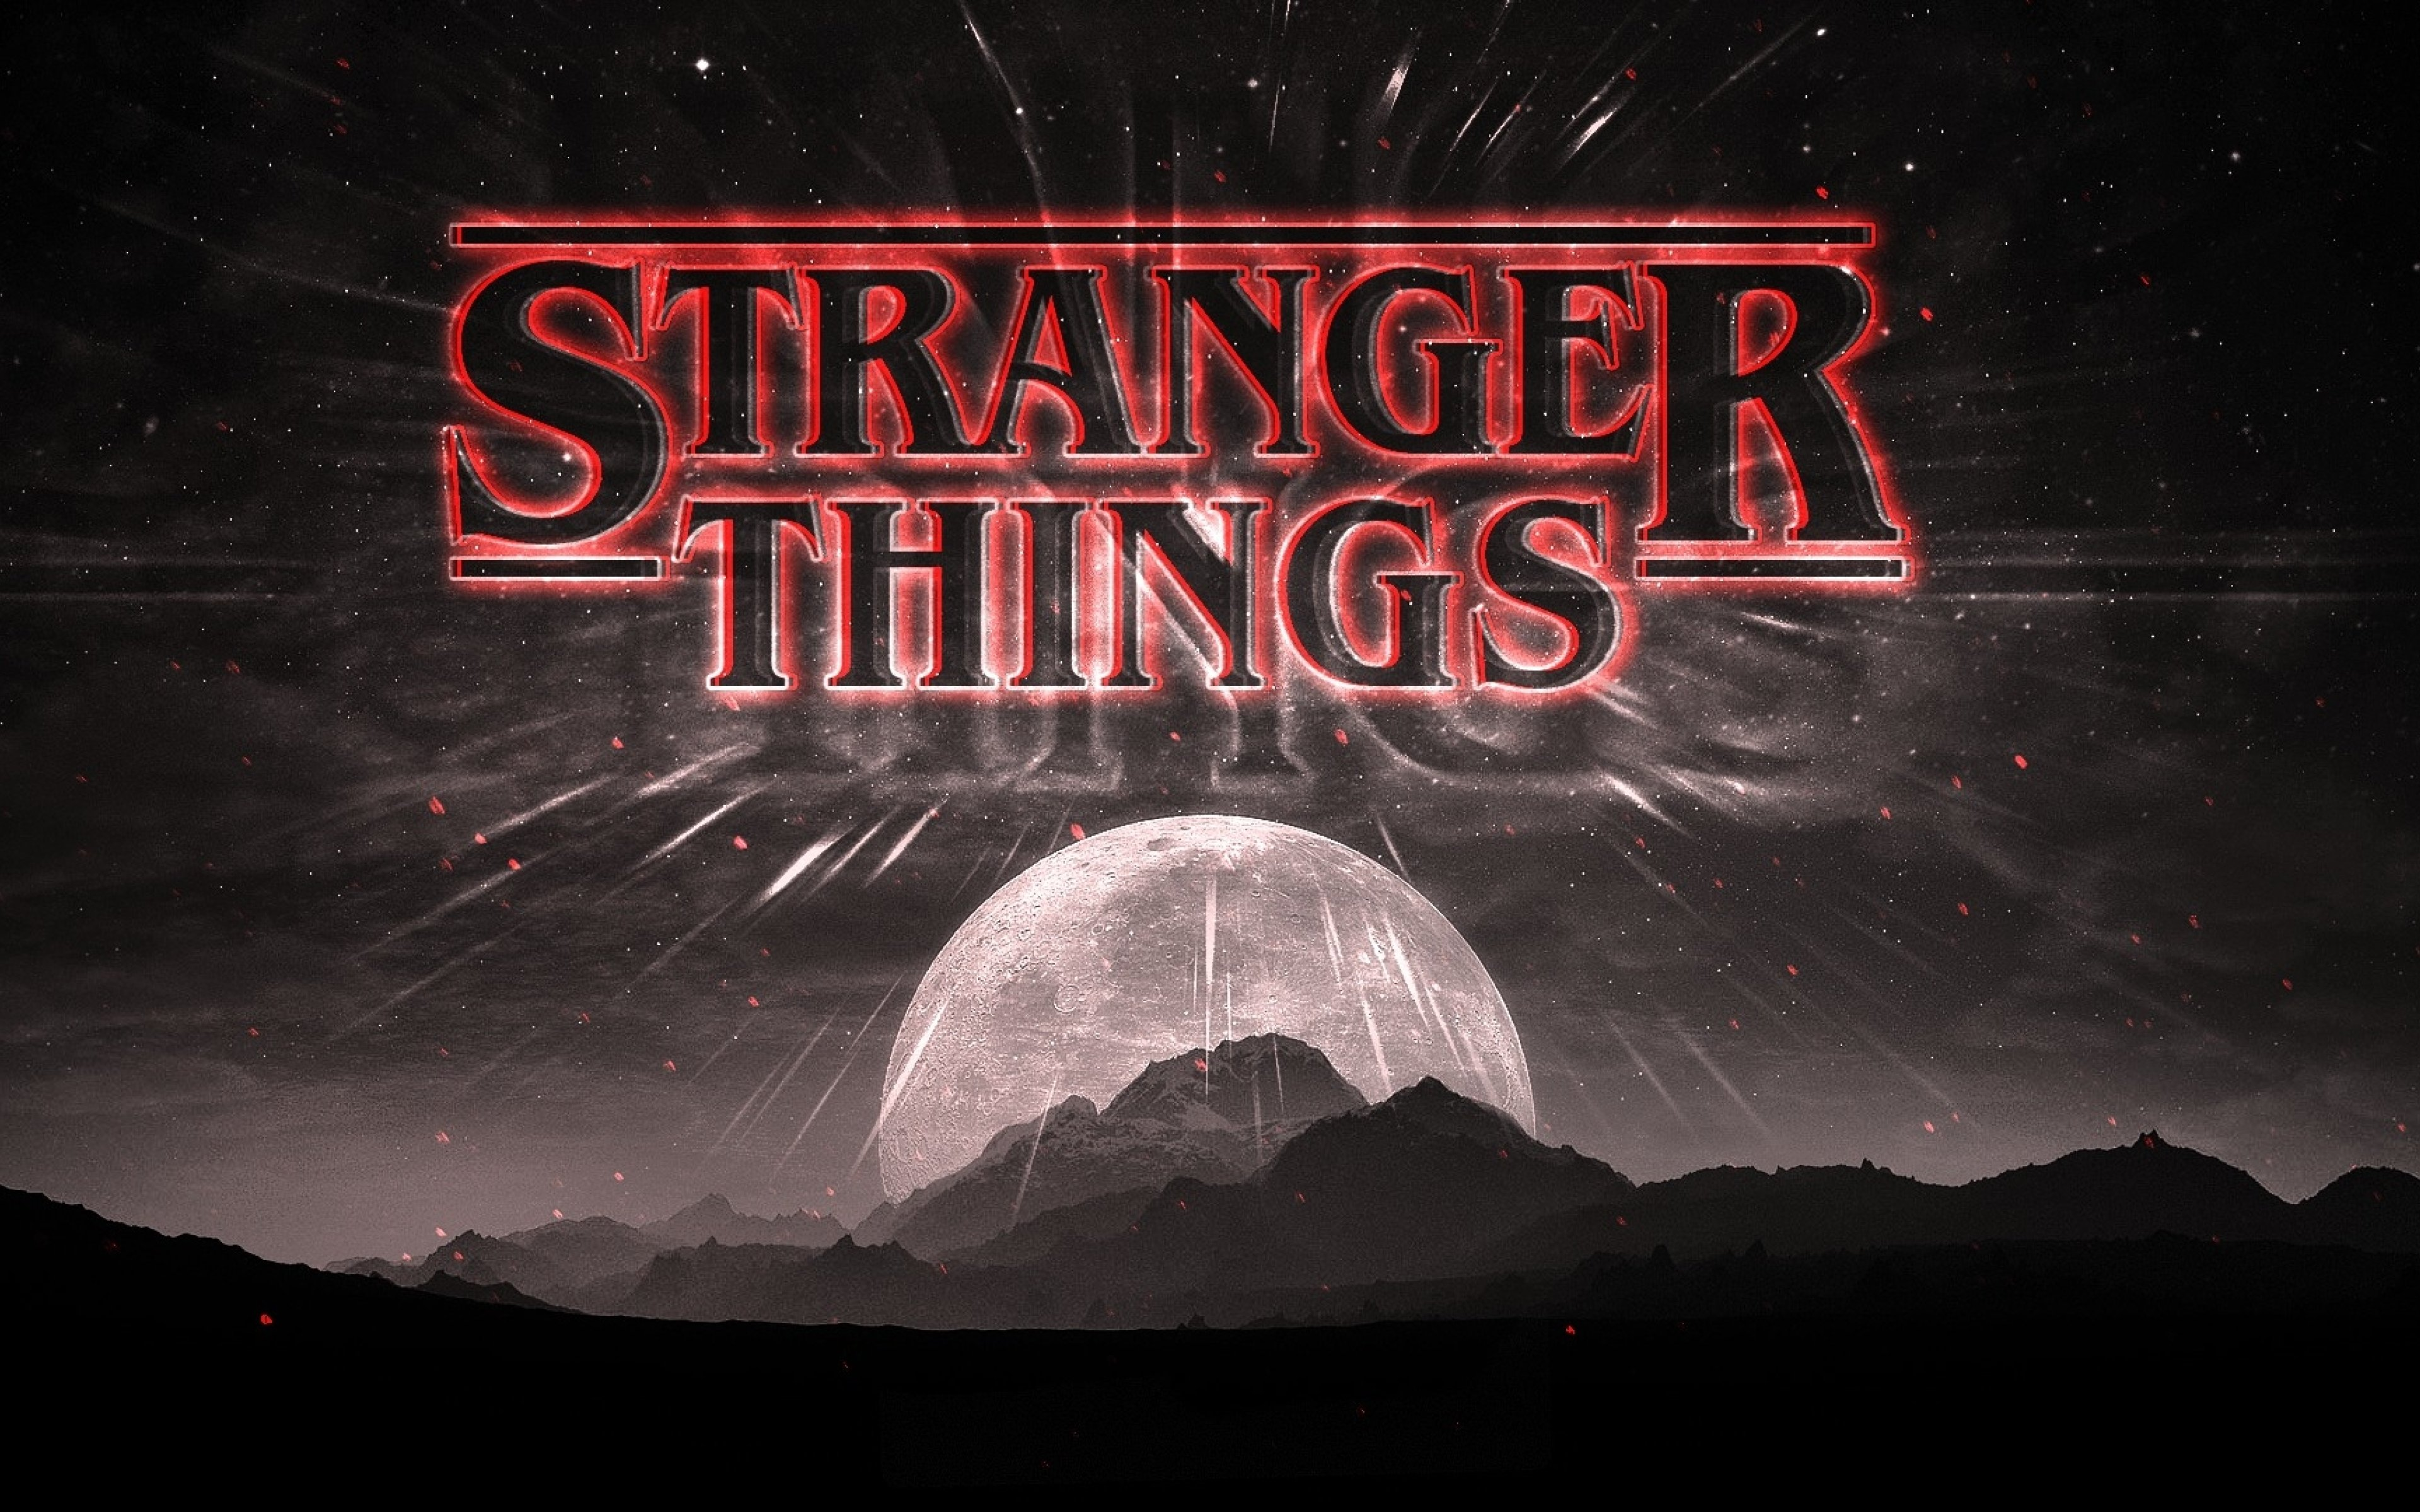 Stranger Things Dark Logo Full HD Wallpaper 3840x2400